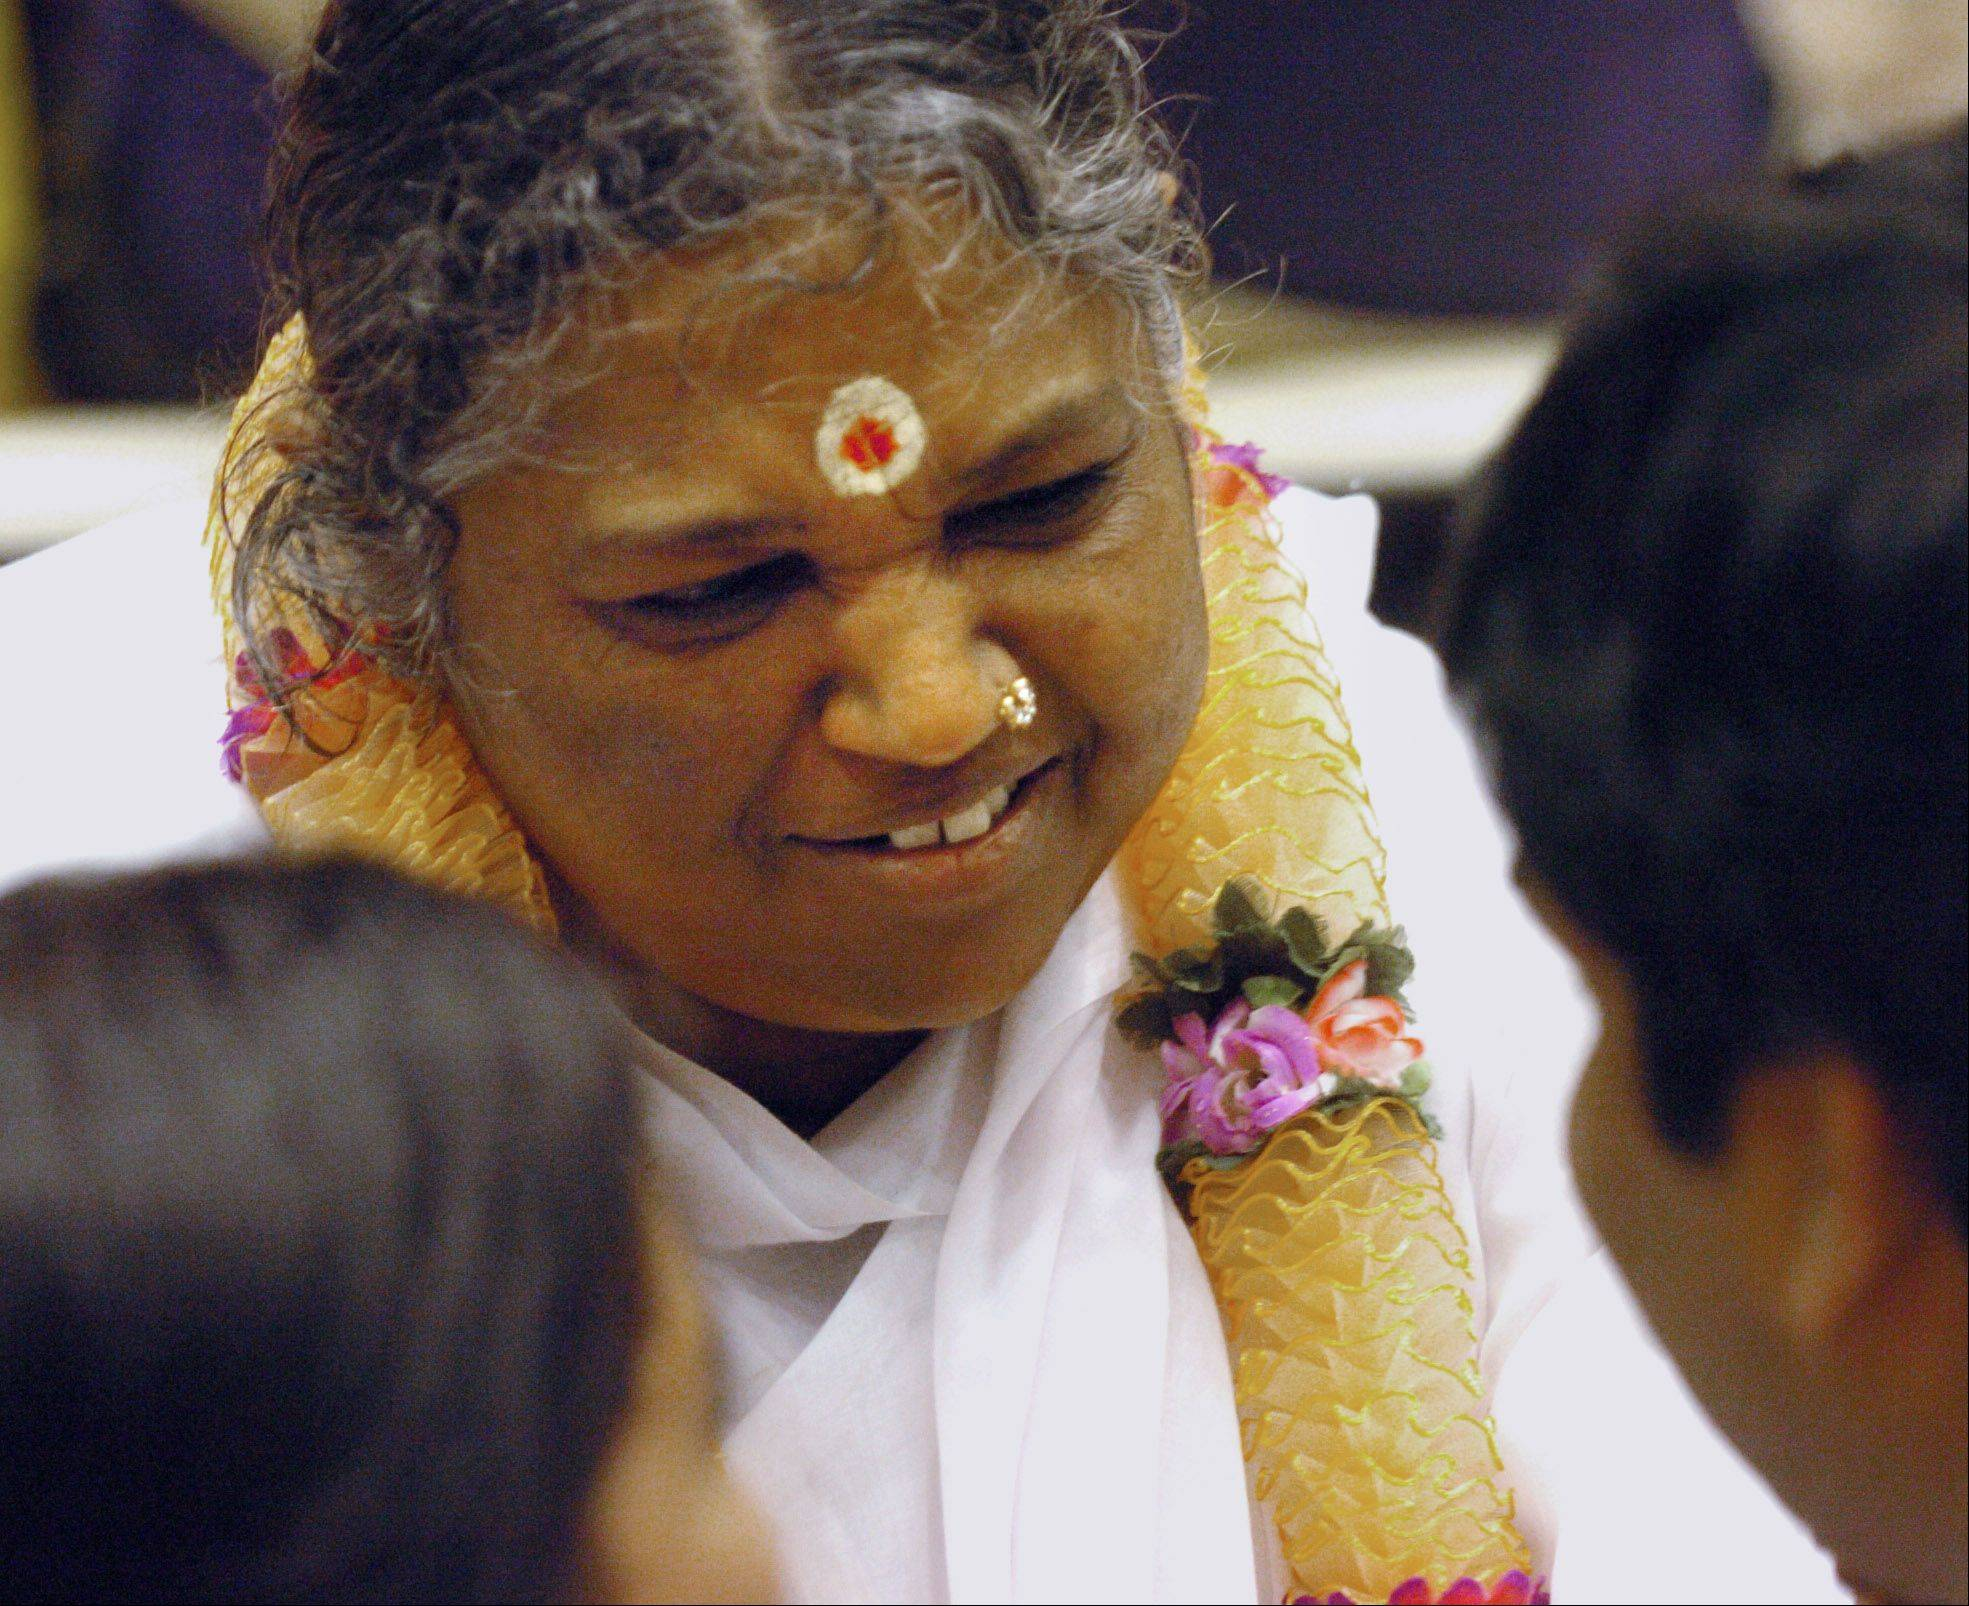 Hindu spiritual leader Mata Amritanandamayi is expected to help inaugurate a La Fox religious center named in her honor during a five-day program that begins Saturday. Her visit comes as authorities continue to investigate how a fire started in the center's administration building Thursday.